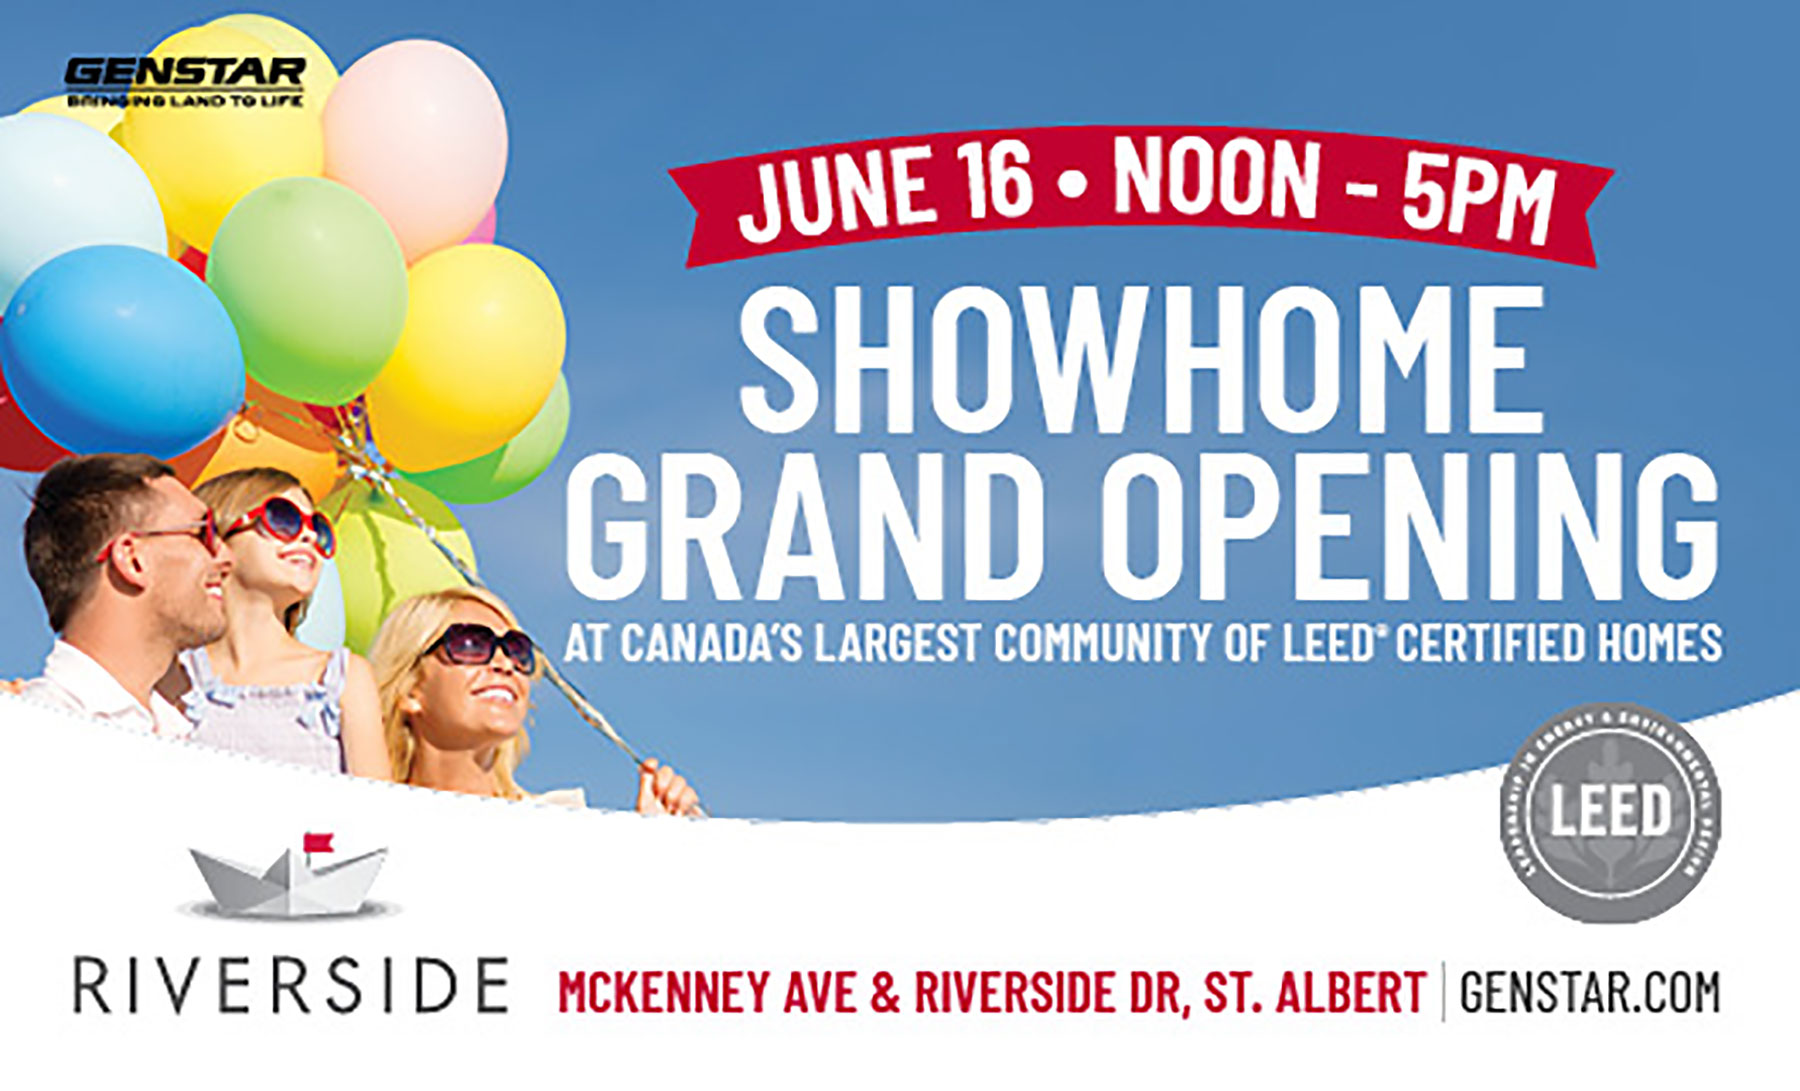 Join us for riverside's sienna show home grand opening!